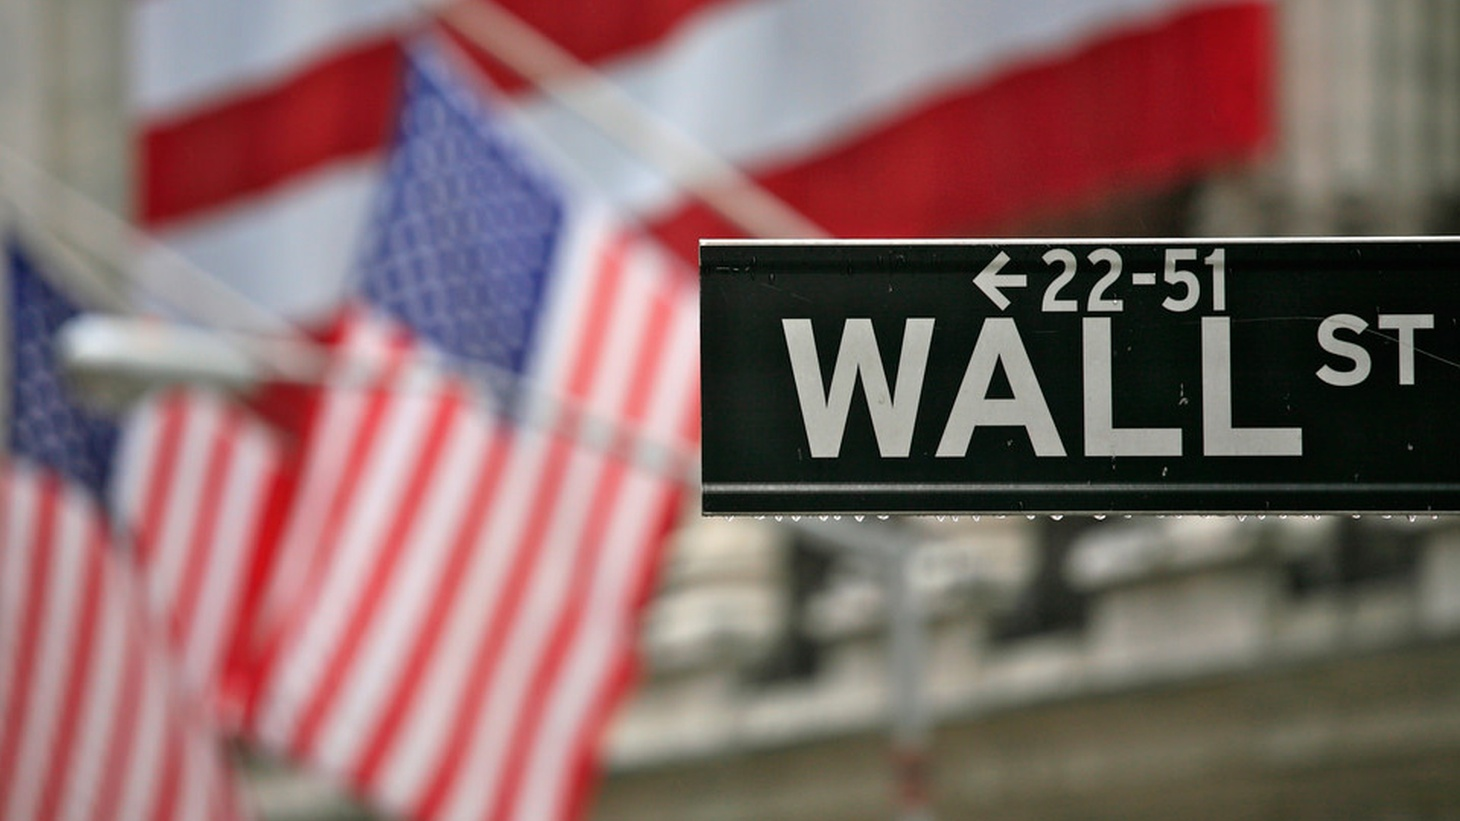 """Donald Trump promised to """"drain the swamp"""" in Washington, but critics say he's filling it with Wall Street bankers they blame for the financial crisis of 2008. Do his working-class supporters really care?"""